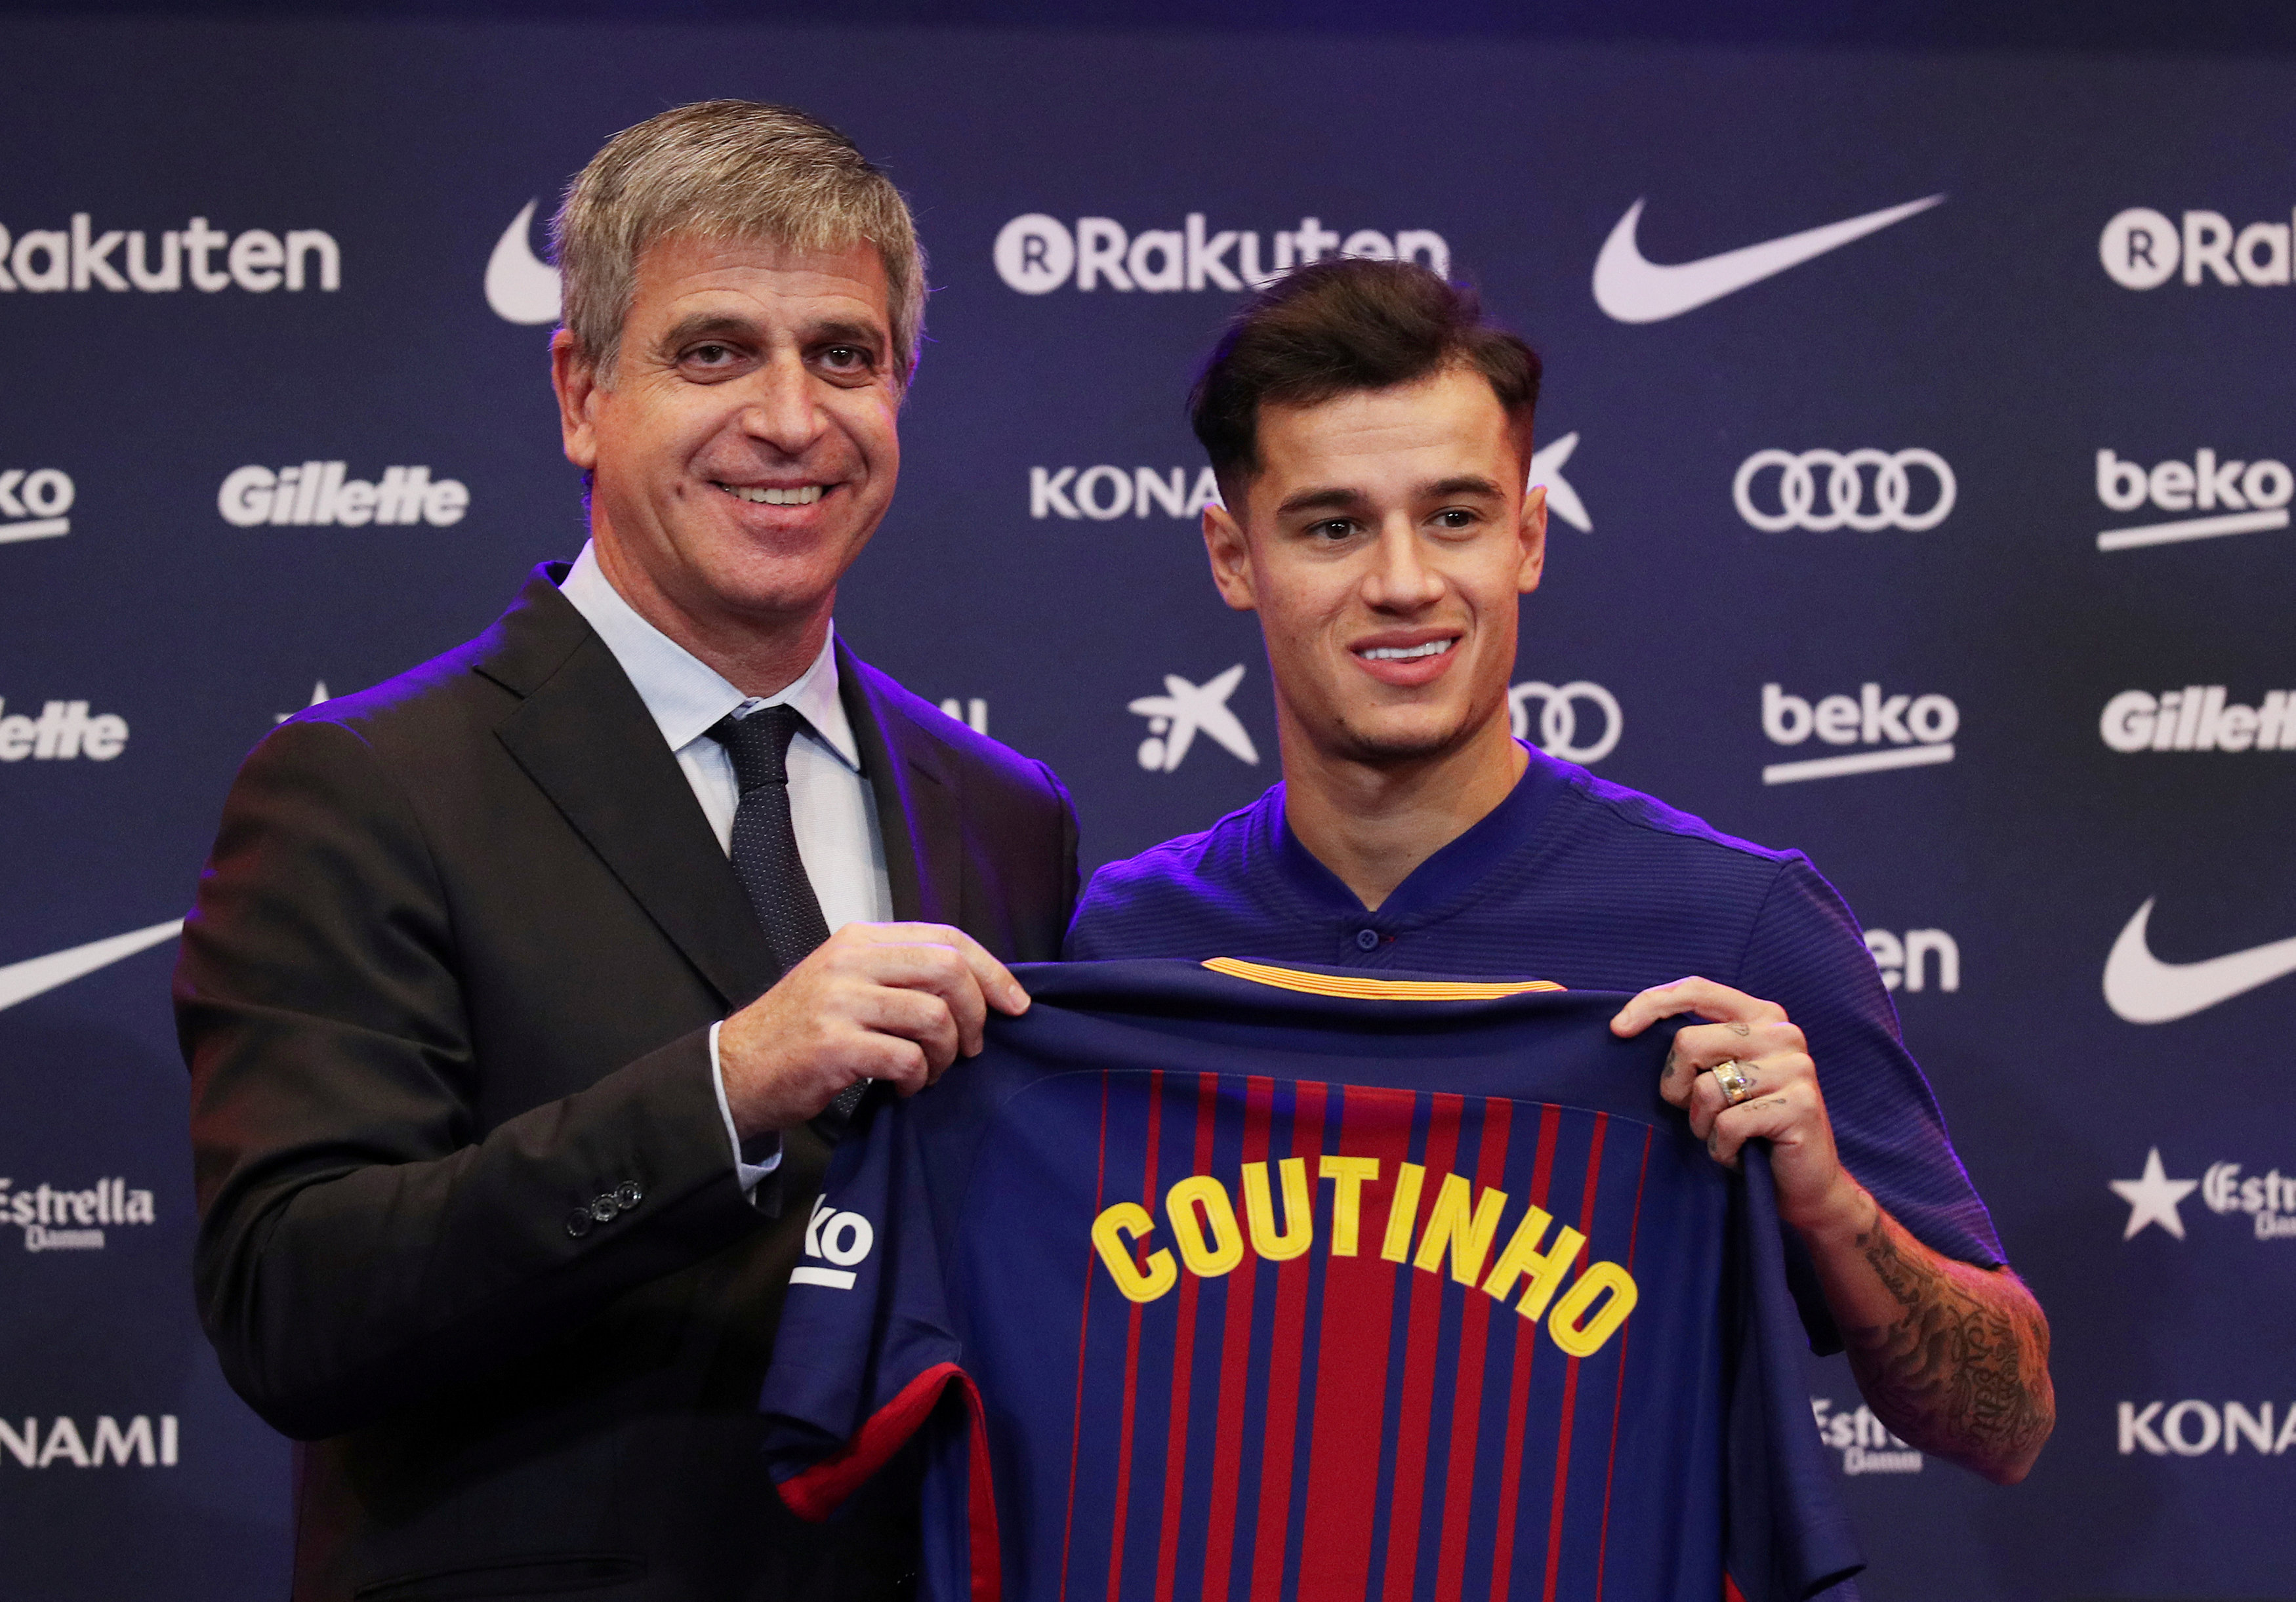 FILE PHOTO: Soccer Football - FC Barcelona - Philippe Coutinho News Conference - Auditorium 1899, Barcelona, Spain - January 8, 2018   FC Barcelona's new signing Philippe Coutinho and Jordi Mestre pose with the club shirt   REUTERS/Albert Gea/File Photo